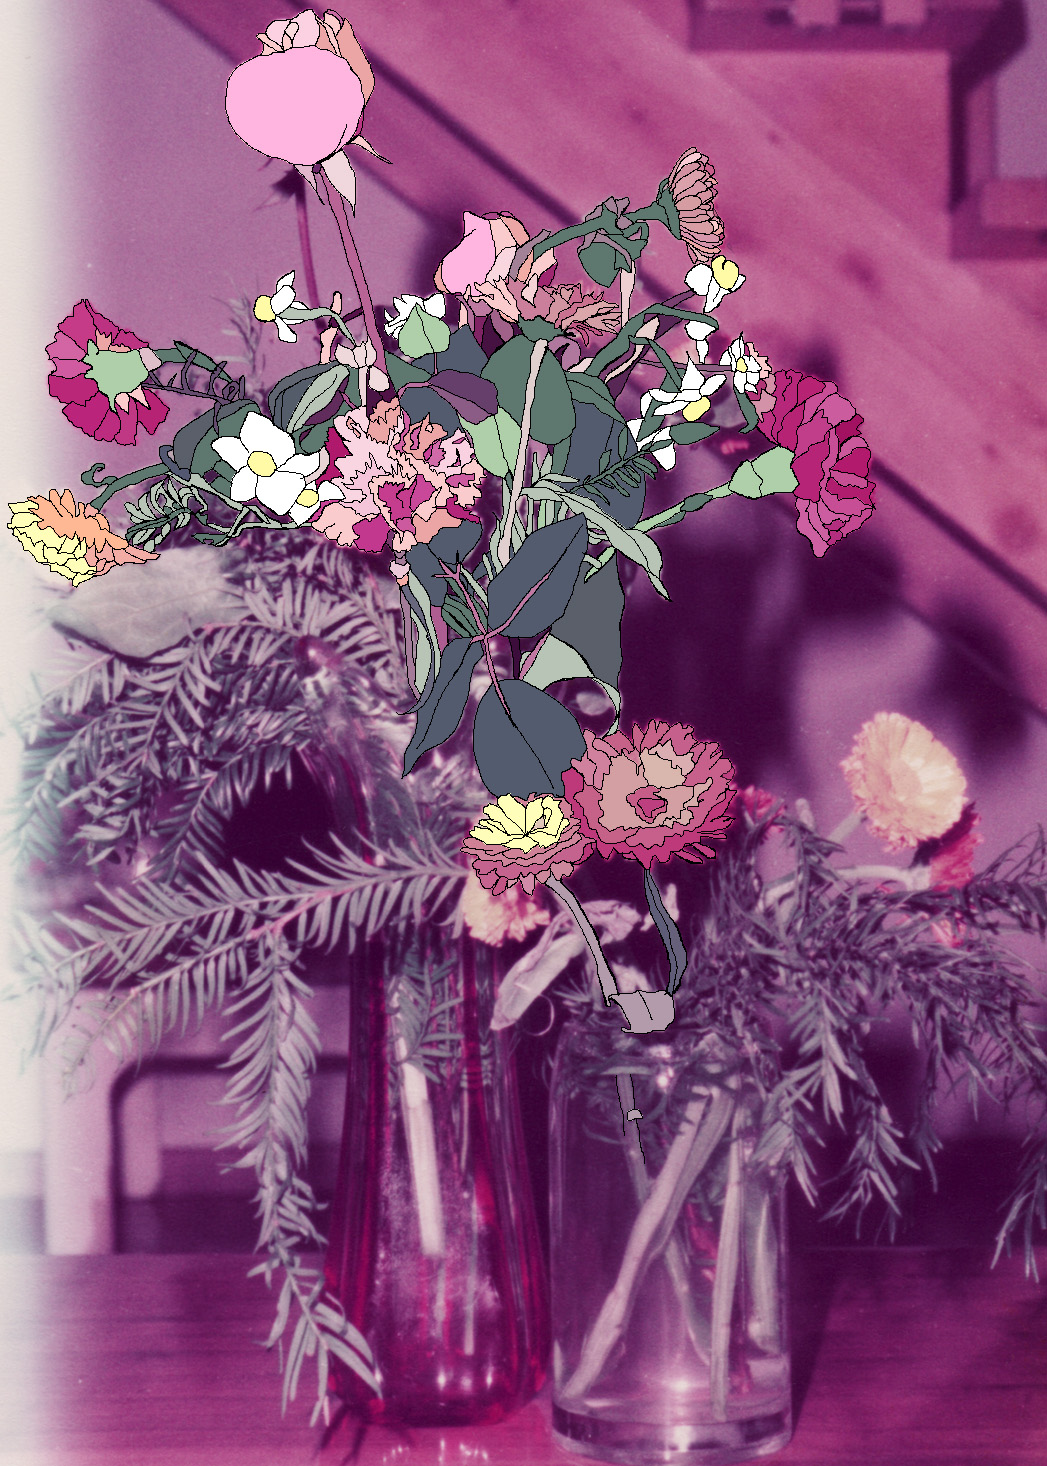 Flowers, archival ink print, 60 x 45 cm, 2011.